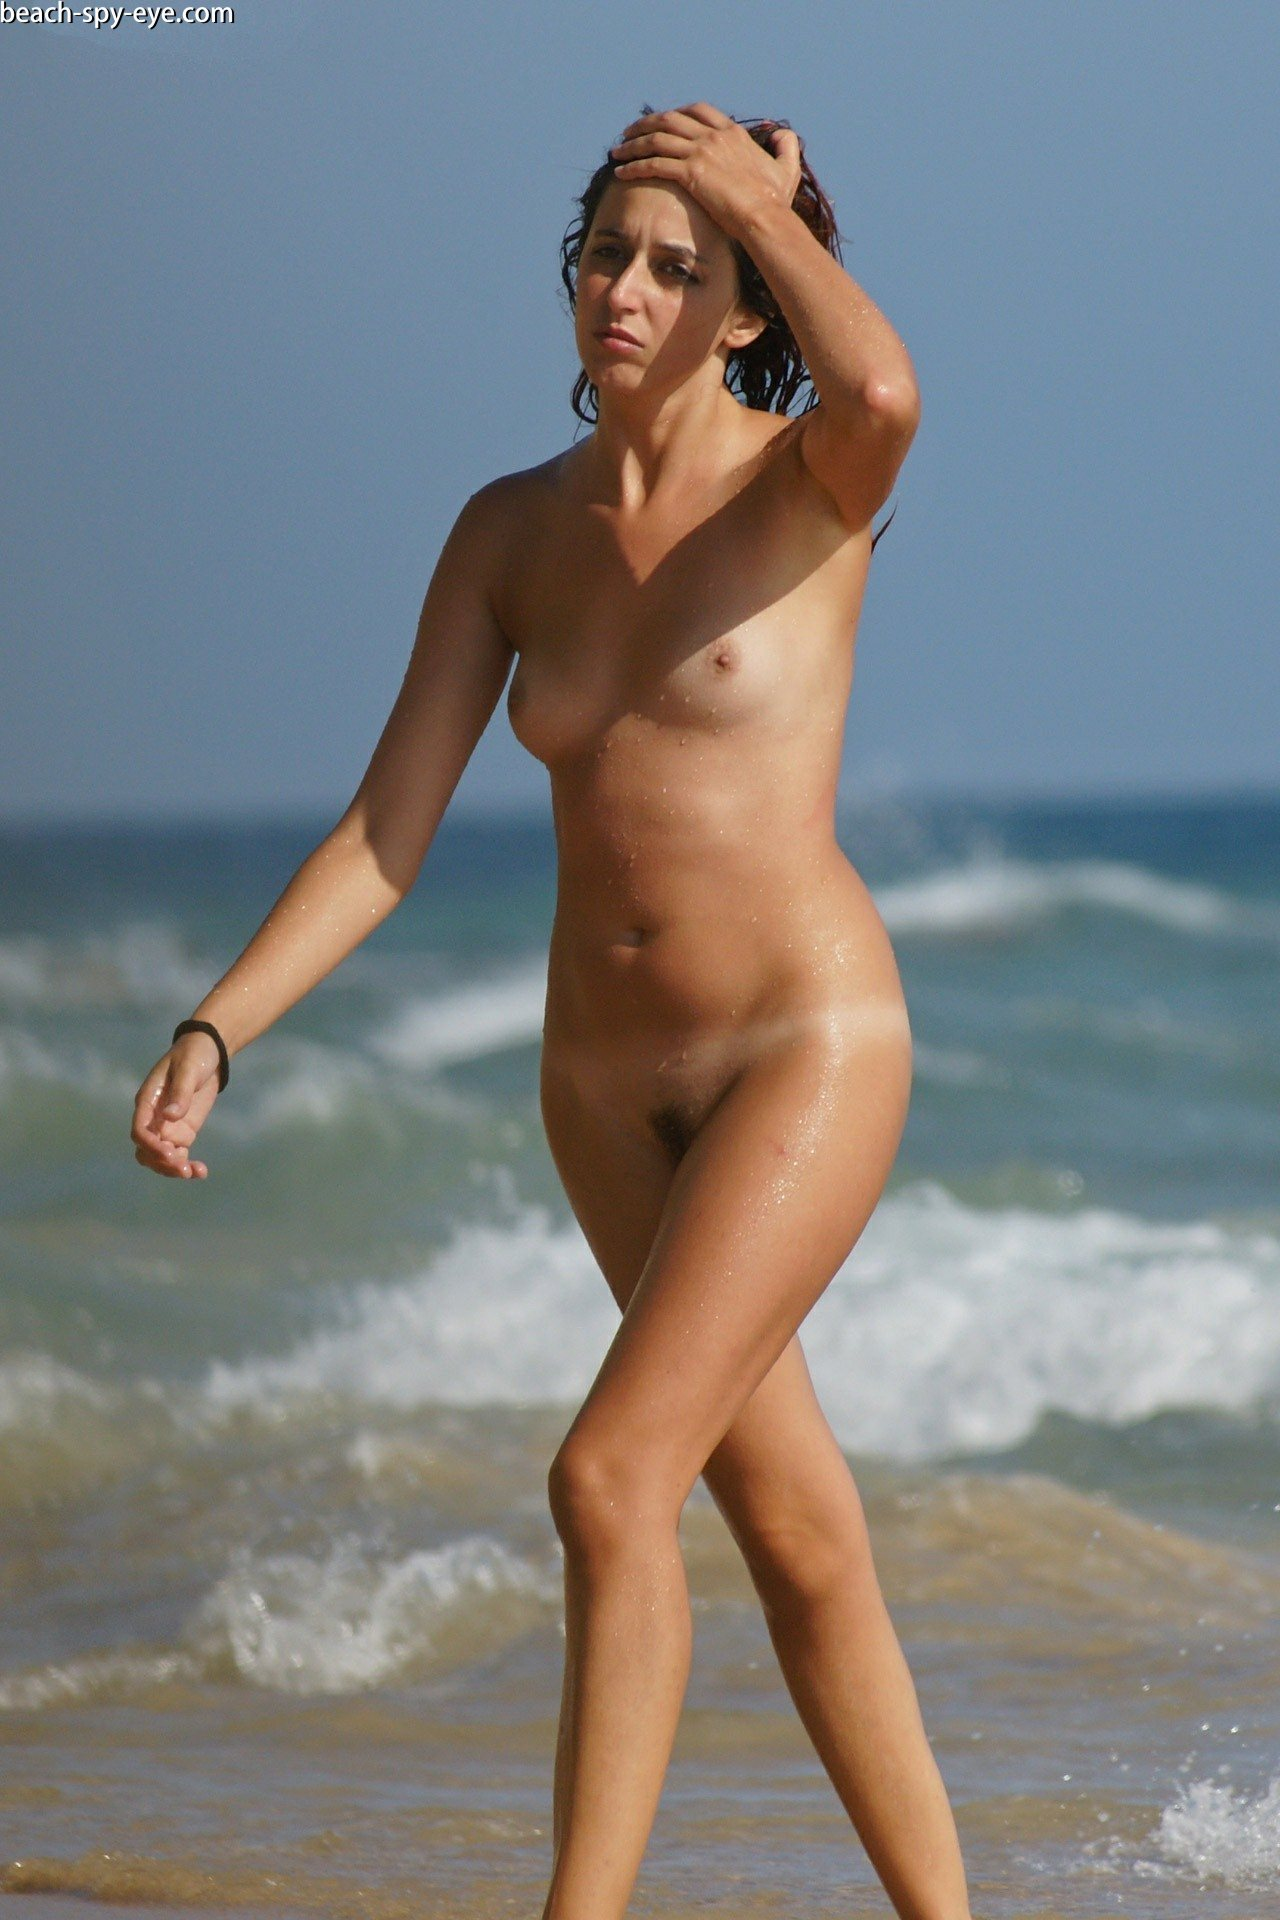 https://pbs-0.adult-empire.com/39/3926/beach_nude_women-6125/1-beach_nude_women.jpg